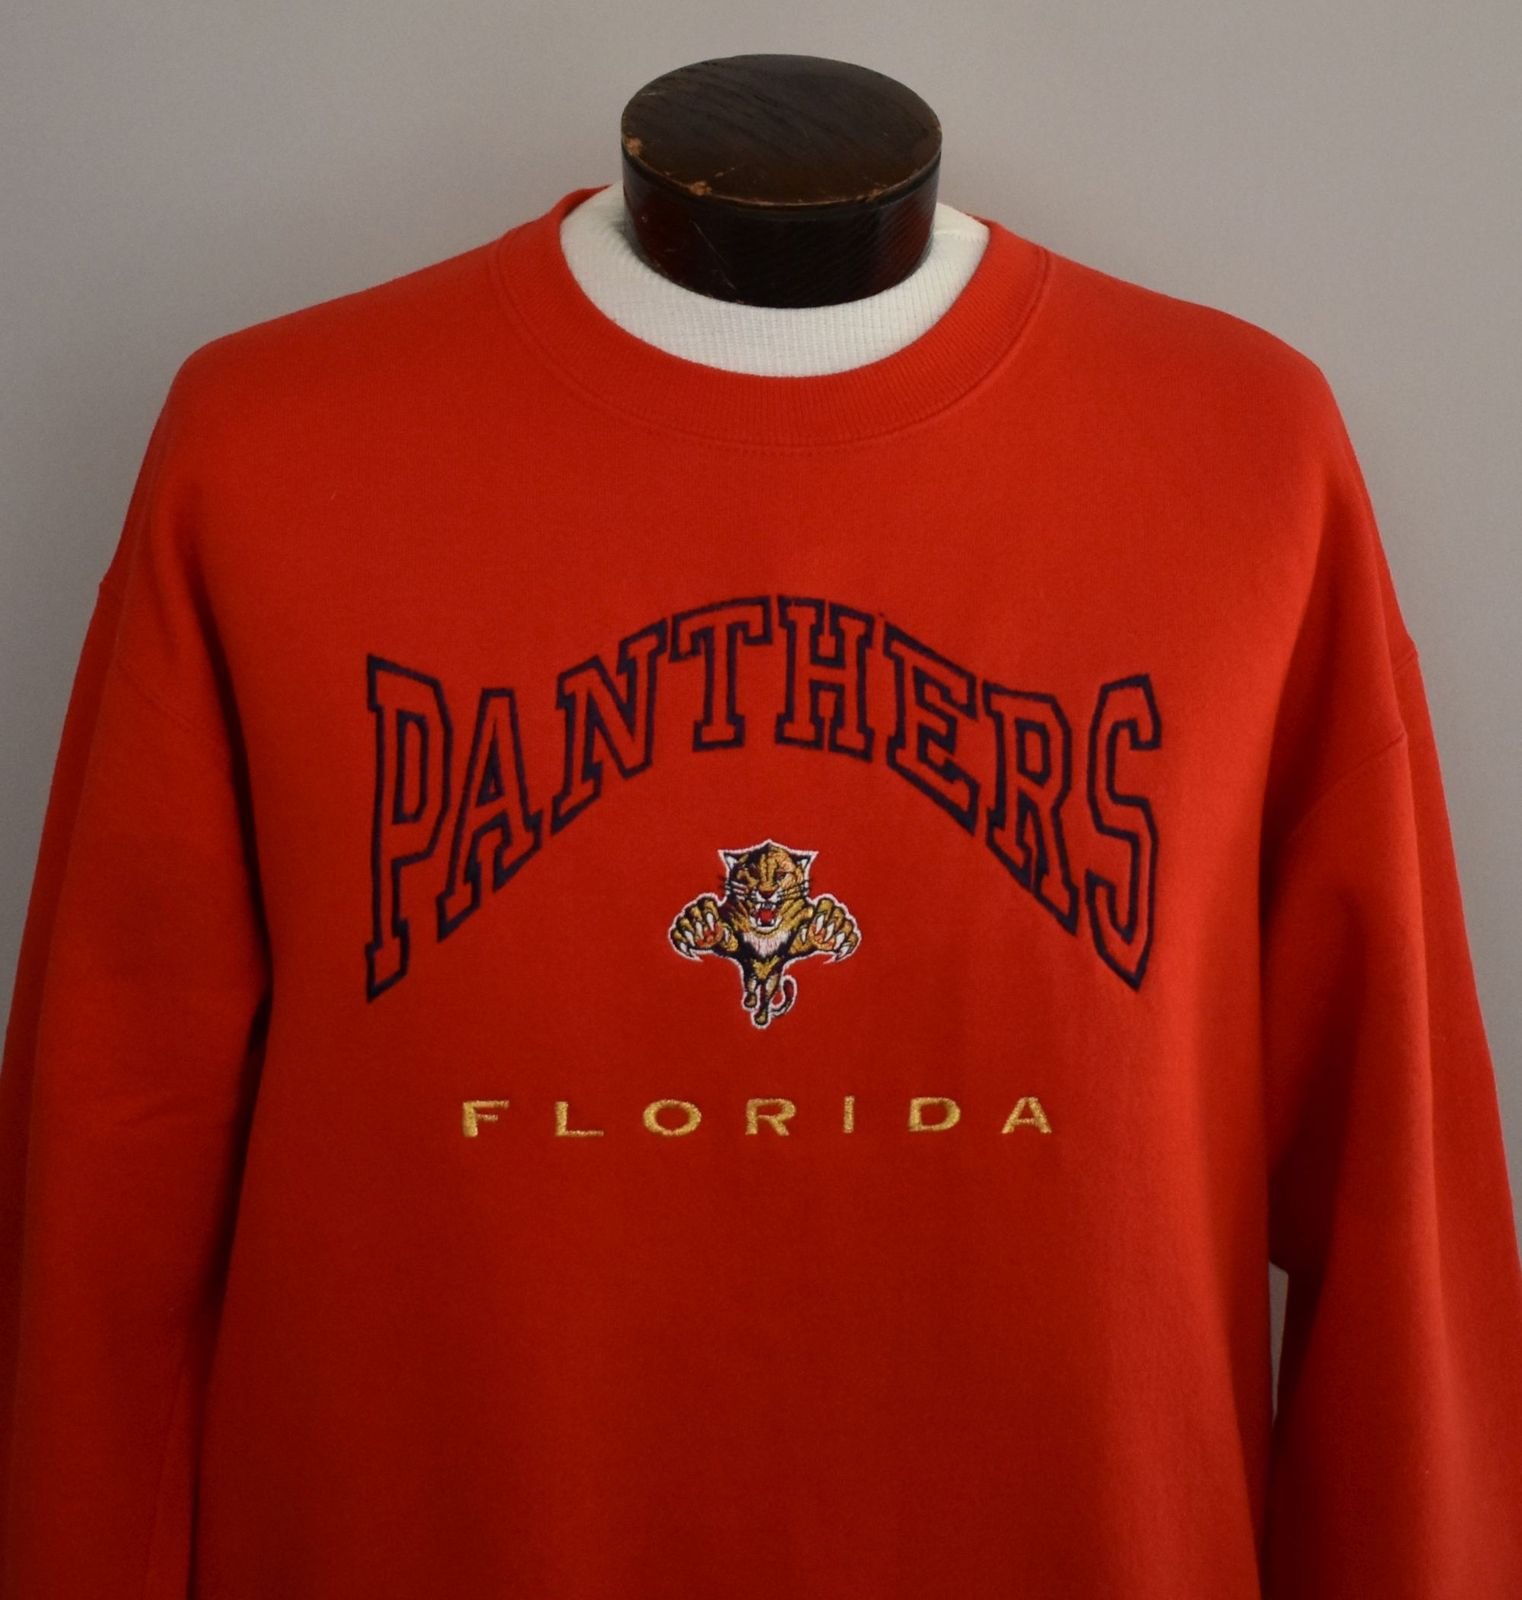 90s Florida Panthers Embroidered Crewneck Sweatshirt Size Hipster Large to XL image 2